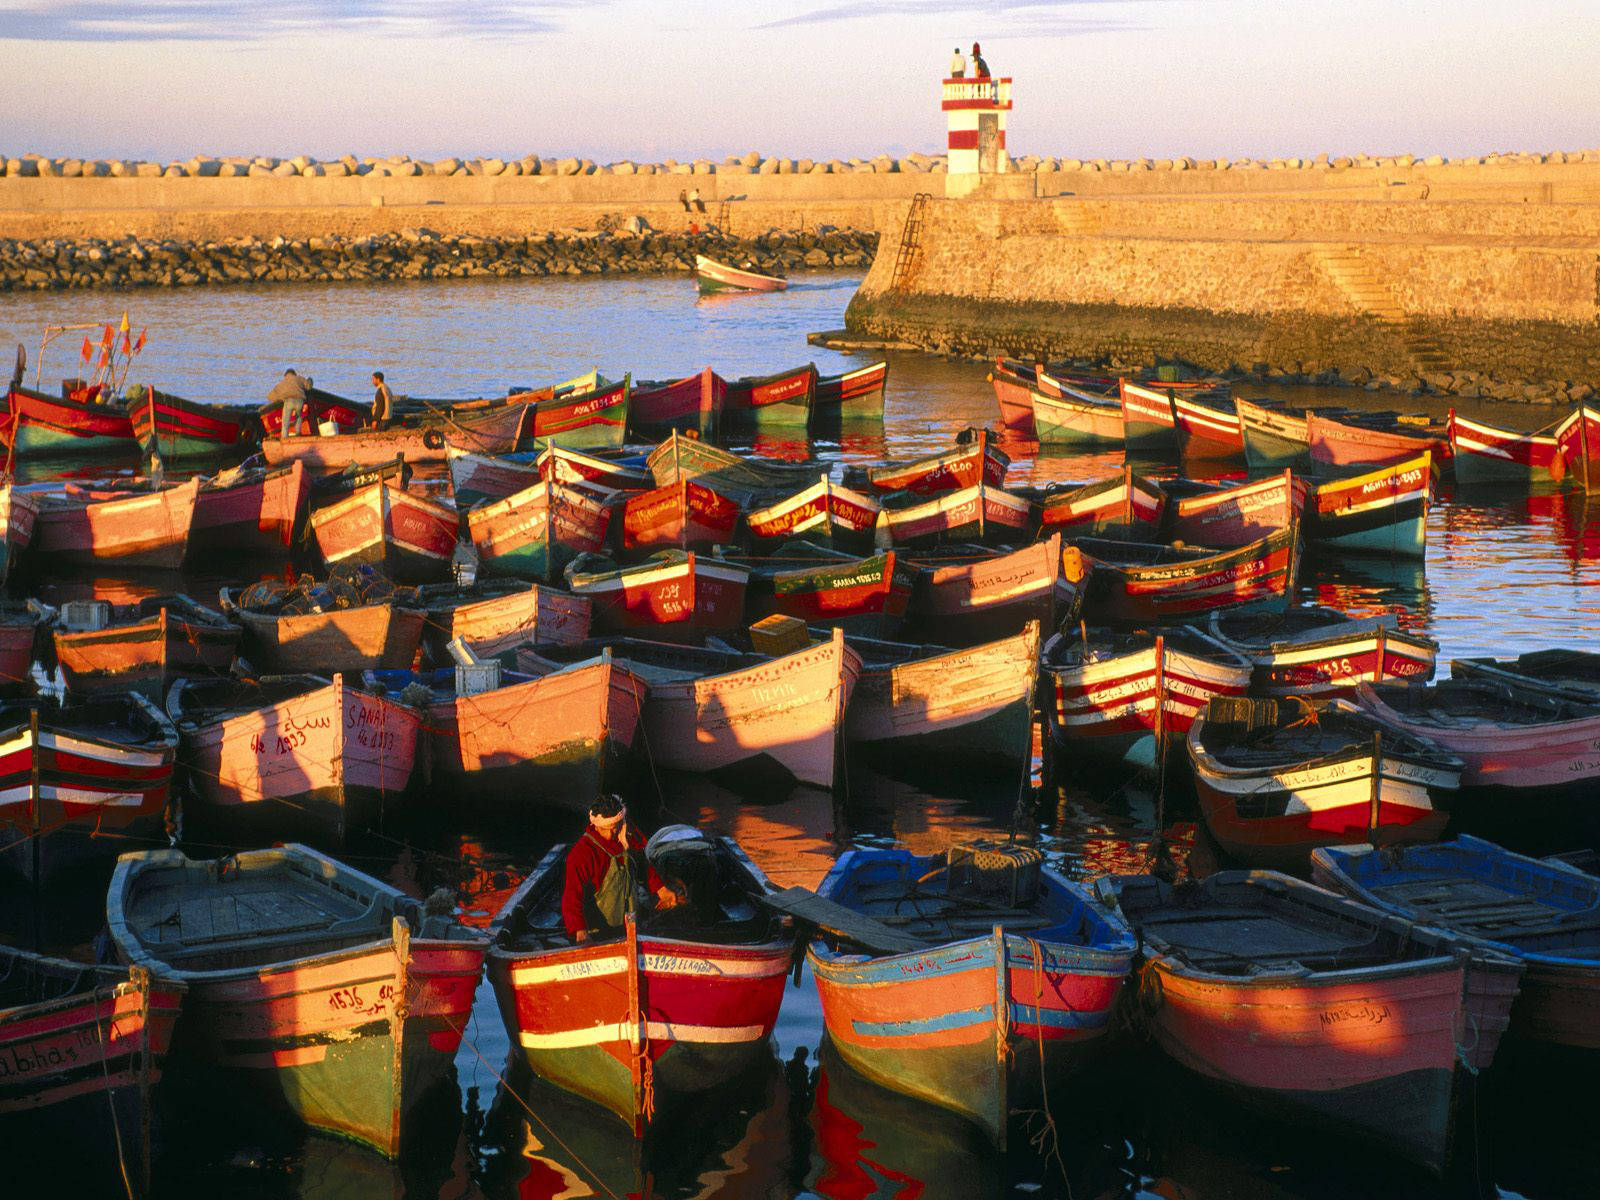 Morocco is an exotic gateway to Africa; its mountains, desert and coast are populated by Berbers and nomads, and its ancient medina lanes lead to souqs and ...